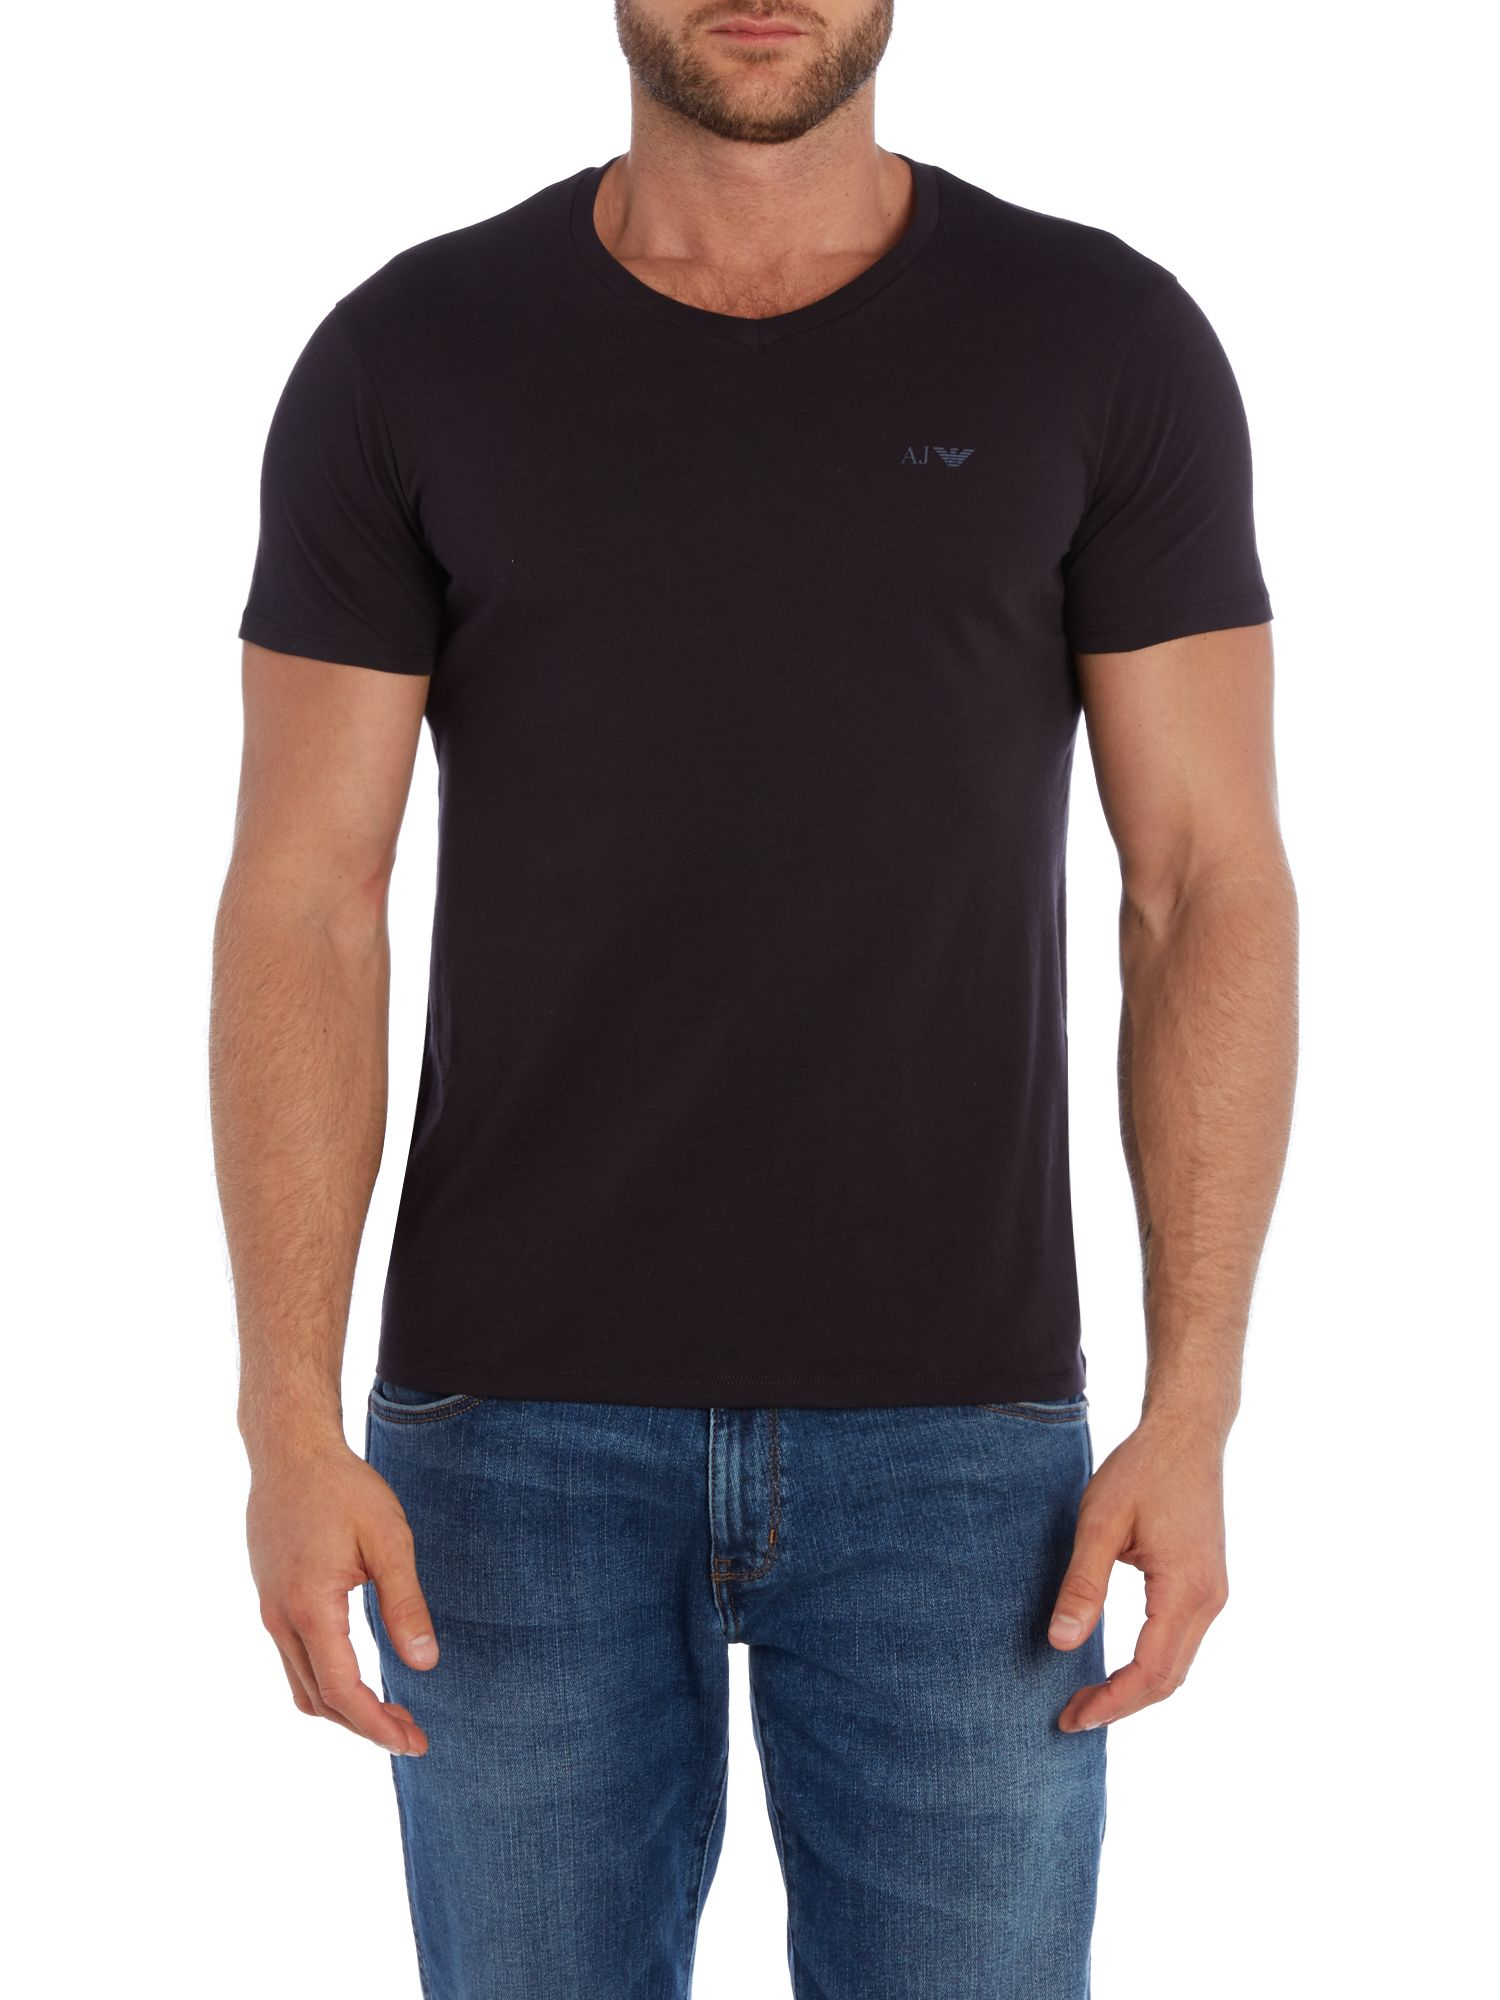 Armani jeans v neck t shirt 2 pack in black for men lyst V neck black t shirt